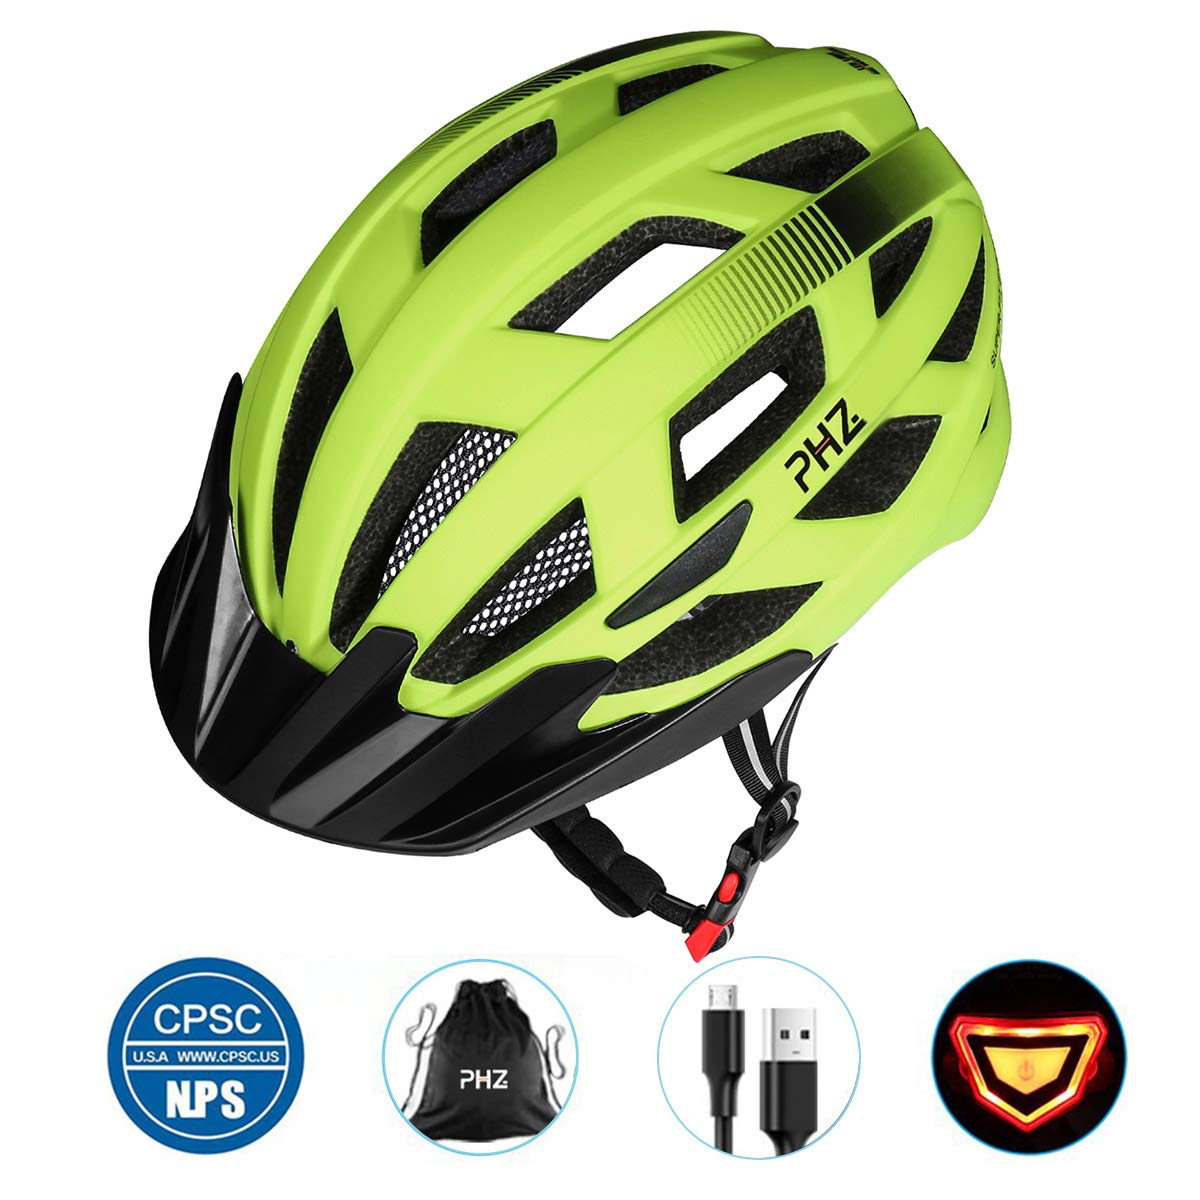 PHZ. Adult Bike Helmet CPSC Certified with Rechargeable USB Light, Bicycle Helmet for Men Women Road Cycling Mountain Biking with Detachable Visor